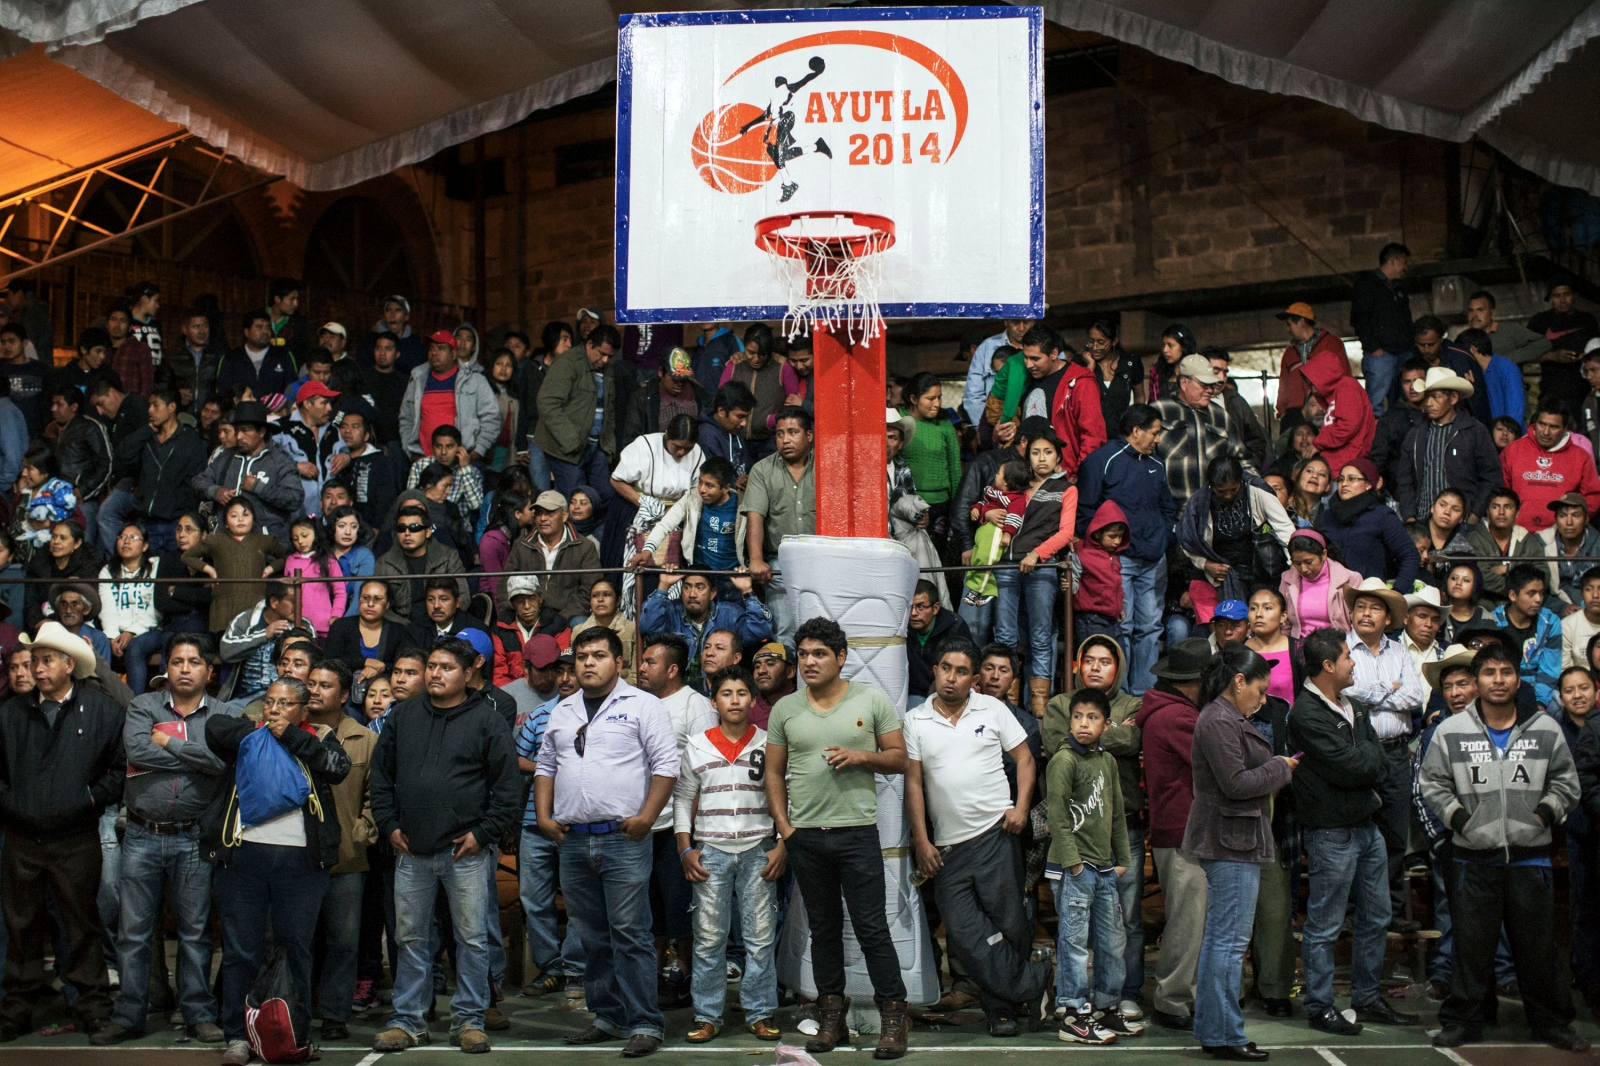 SAN PEDRO Y SAN PABLO AYUTLA, JANUARY 27, 2014.- Fans watch the pro basketball tournament held in Ayutla in 2014. The prize for first place was MX$50,000, around US$3500 at the time.